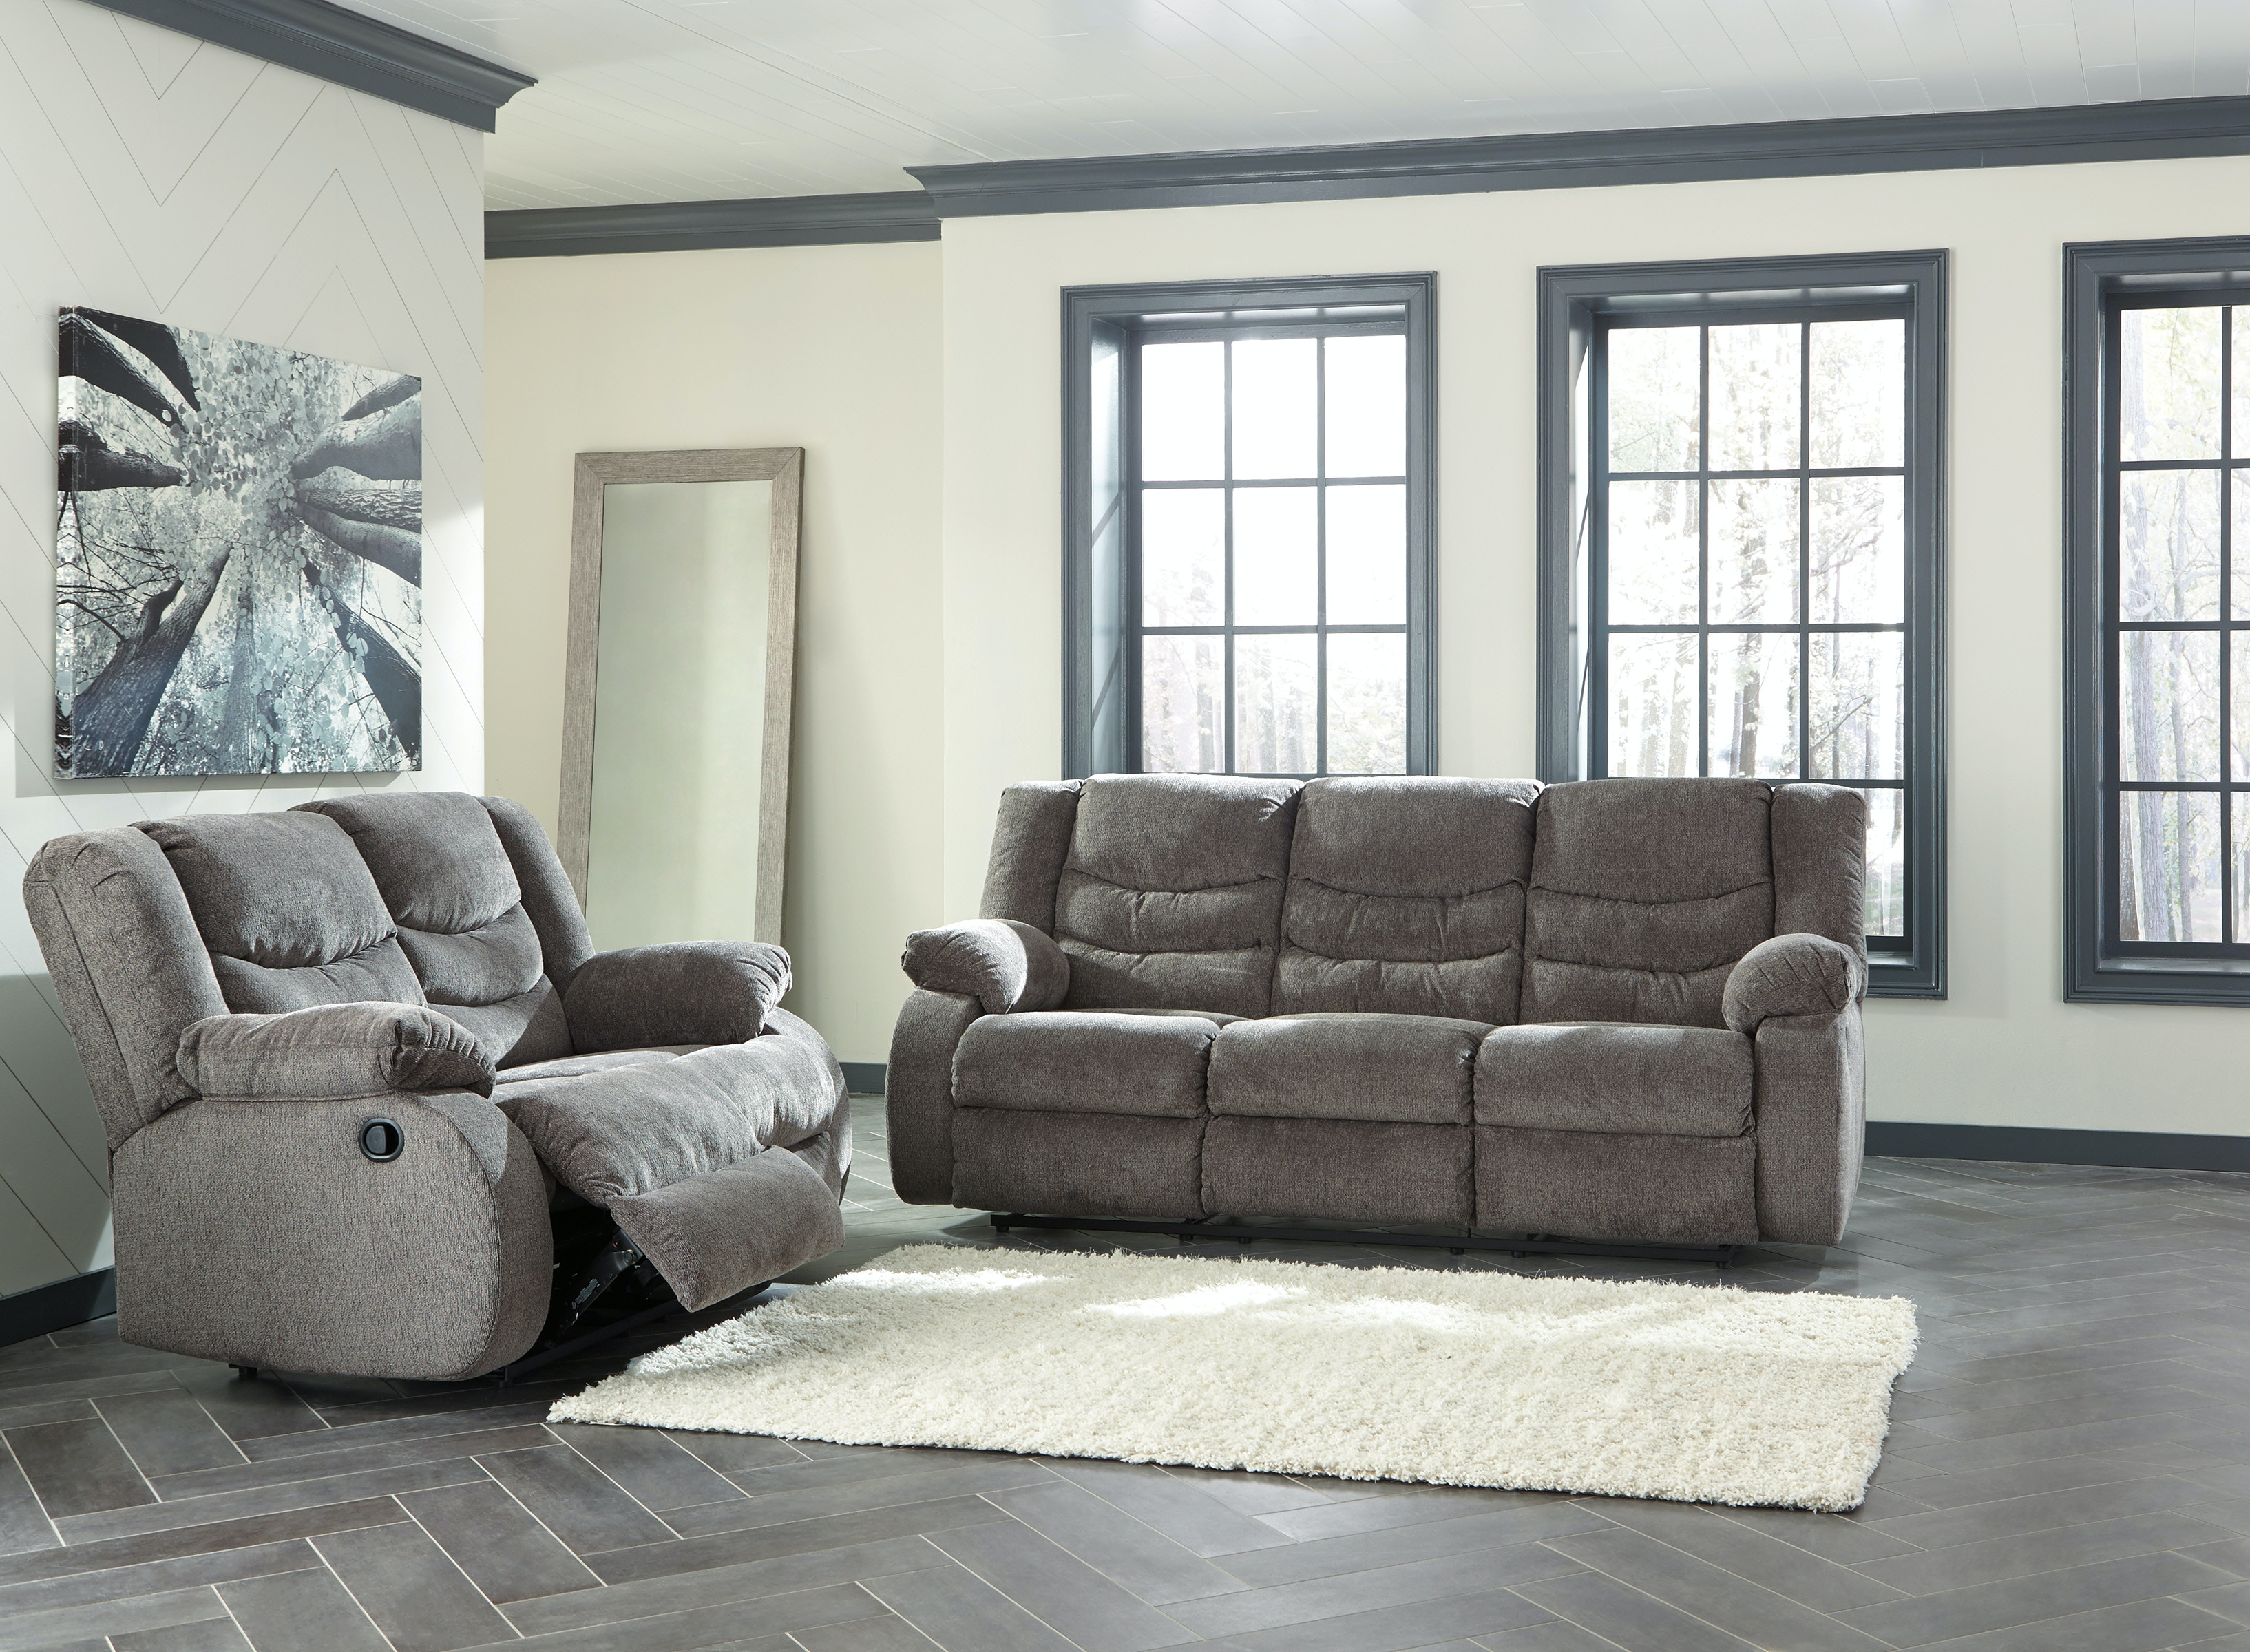 Living Room Sets Louisville Ky ashley living room sets - winner furniture - louisville, owensboro